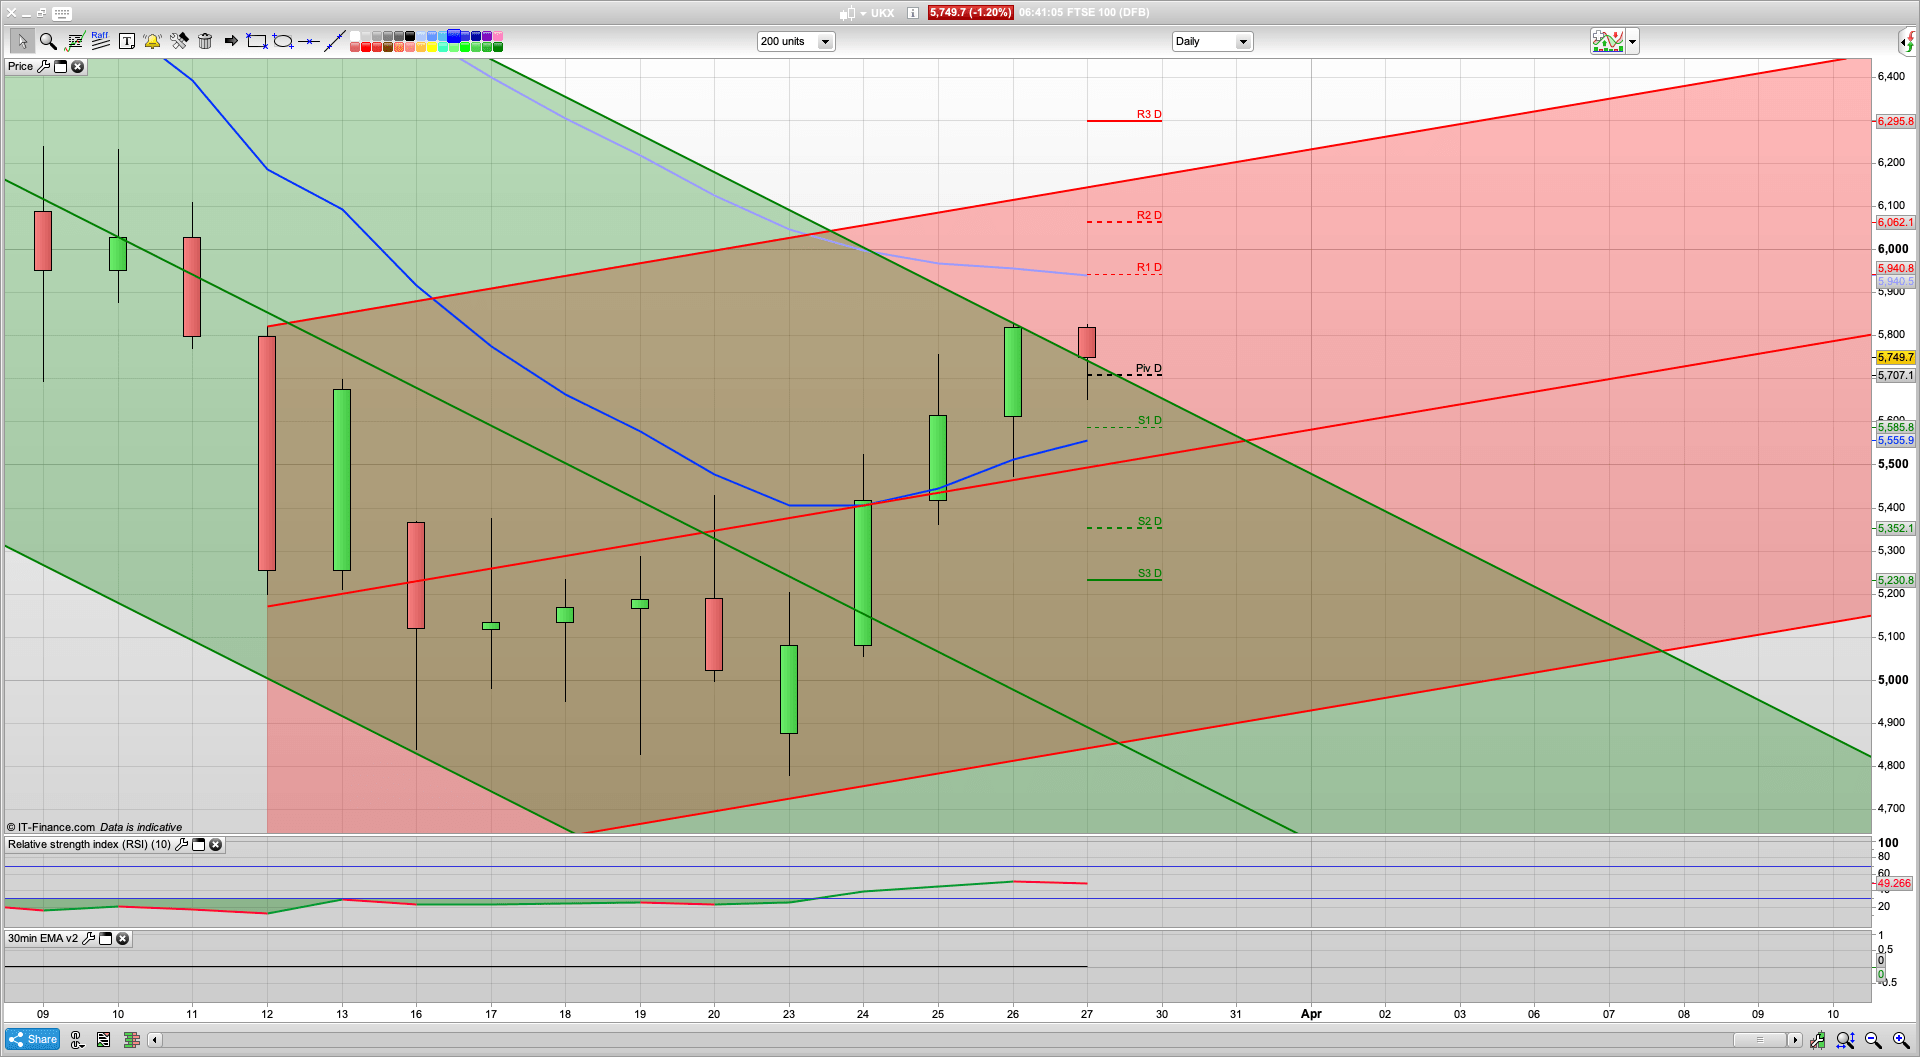 FTSE and SPX testing the top of the 20 day channel | 5820 5900 5950 resistance | 5620 5585 5492 support